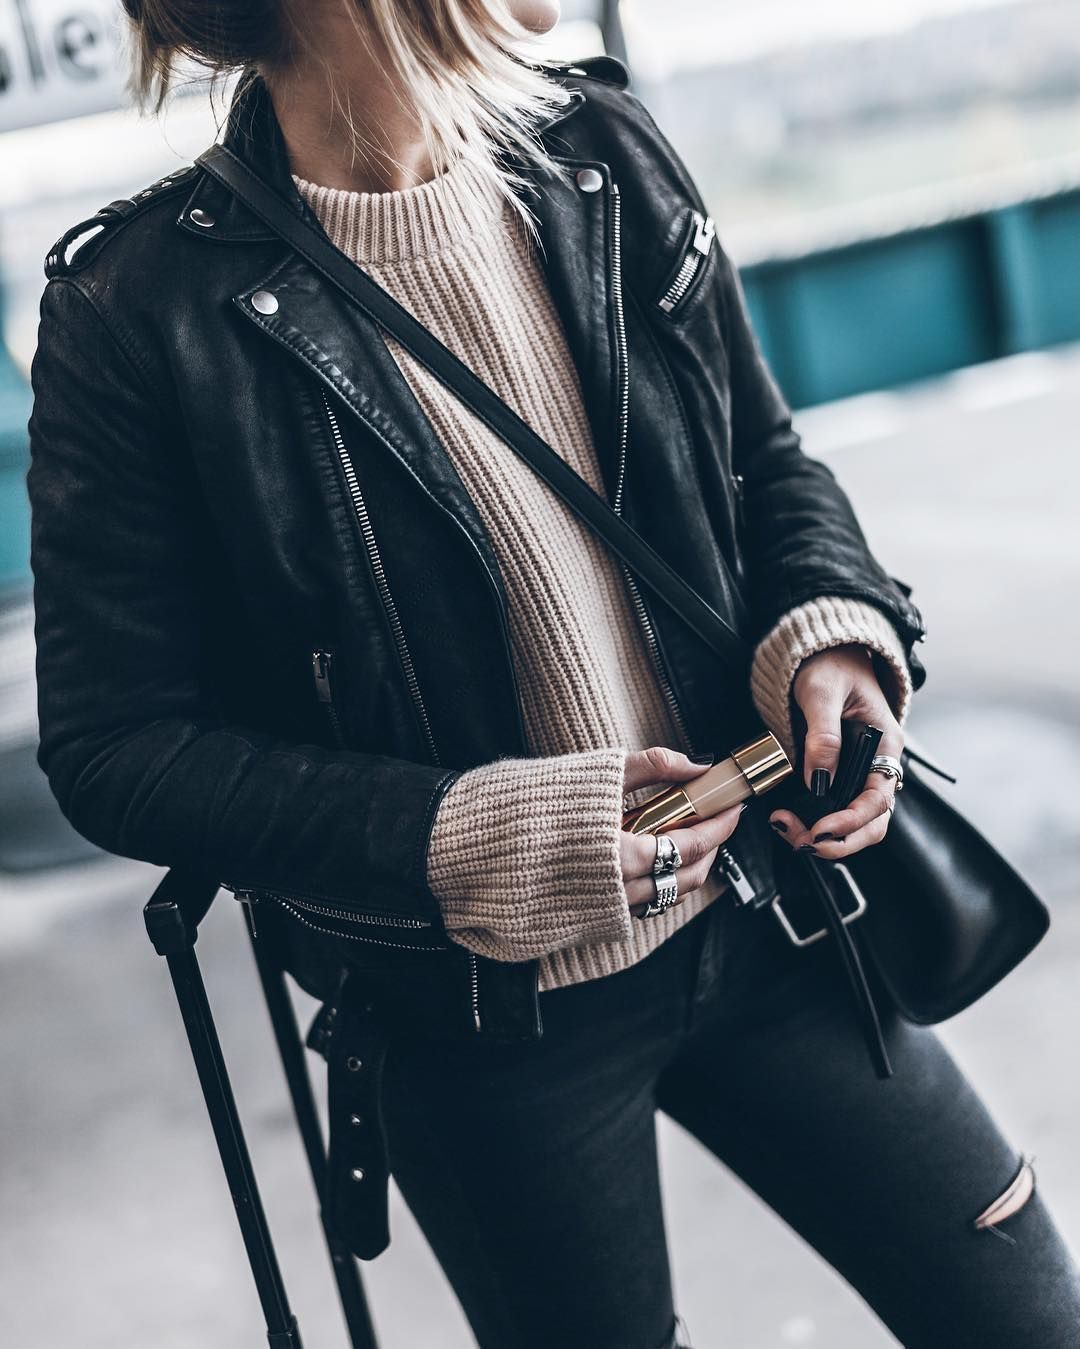 Black Leather Jacket With Oversized Knit Sweater And Trendy Distressed Denim Jeans Moto Jacket Street Style Leather Jacket Outfits Jacket Outfits [ 1349 x 1080 Pixel ]